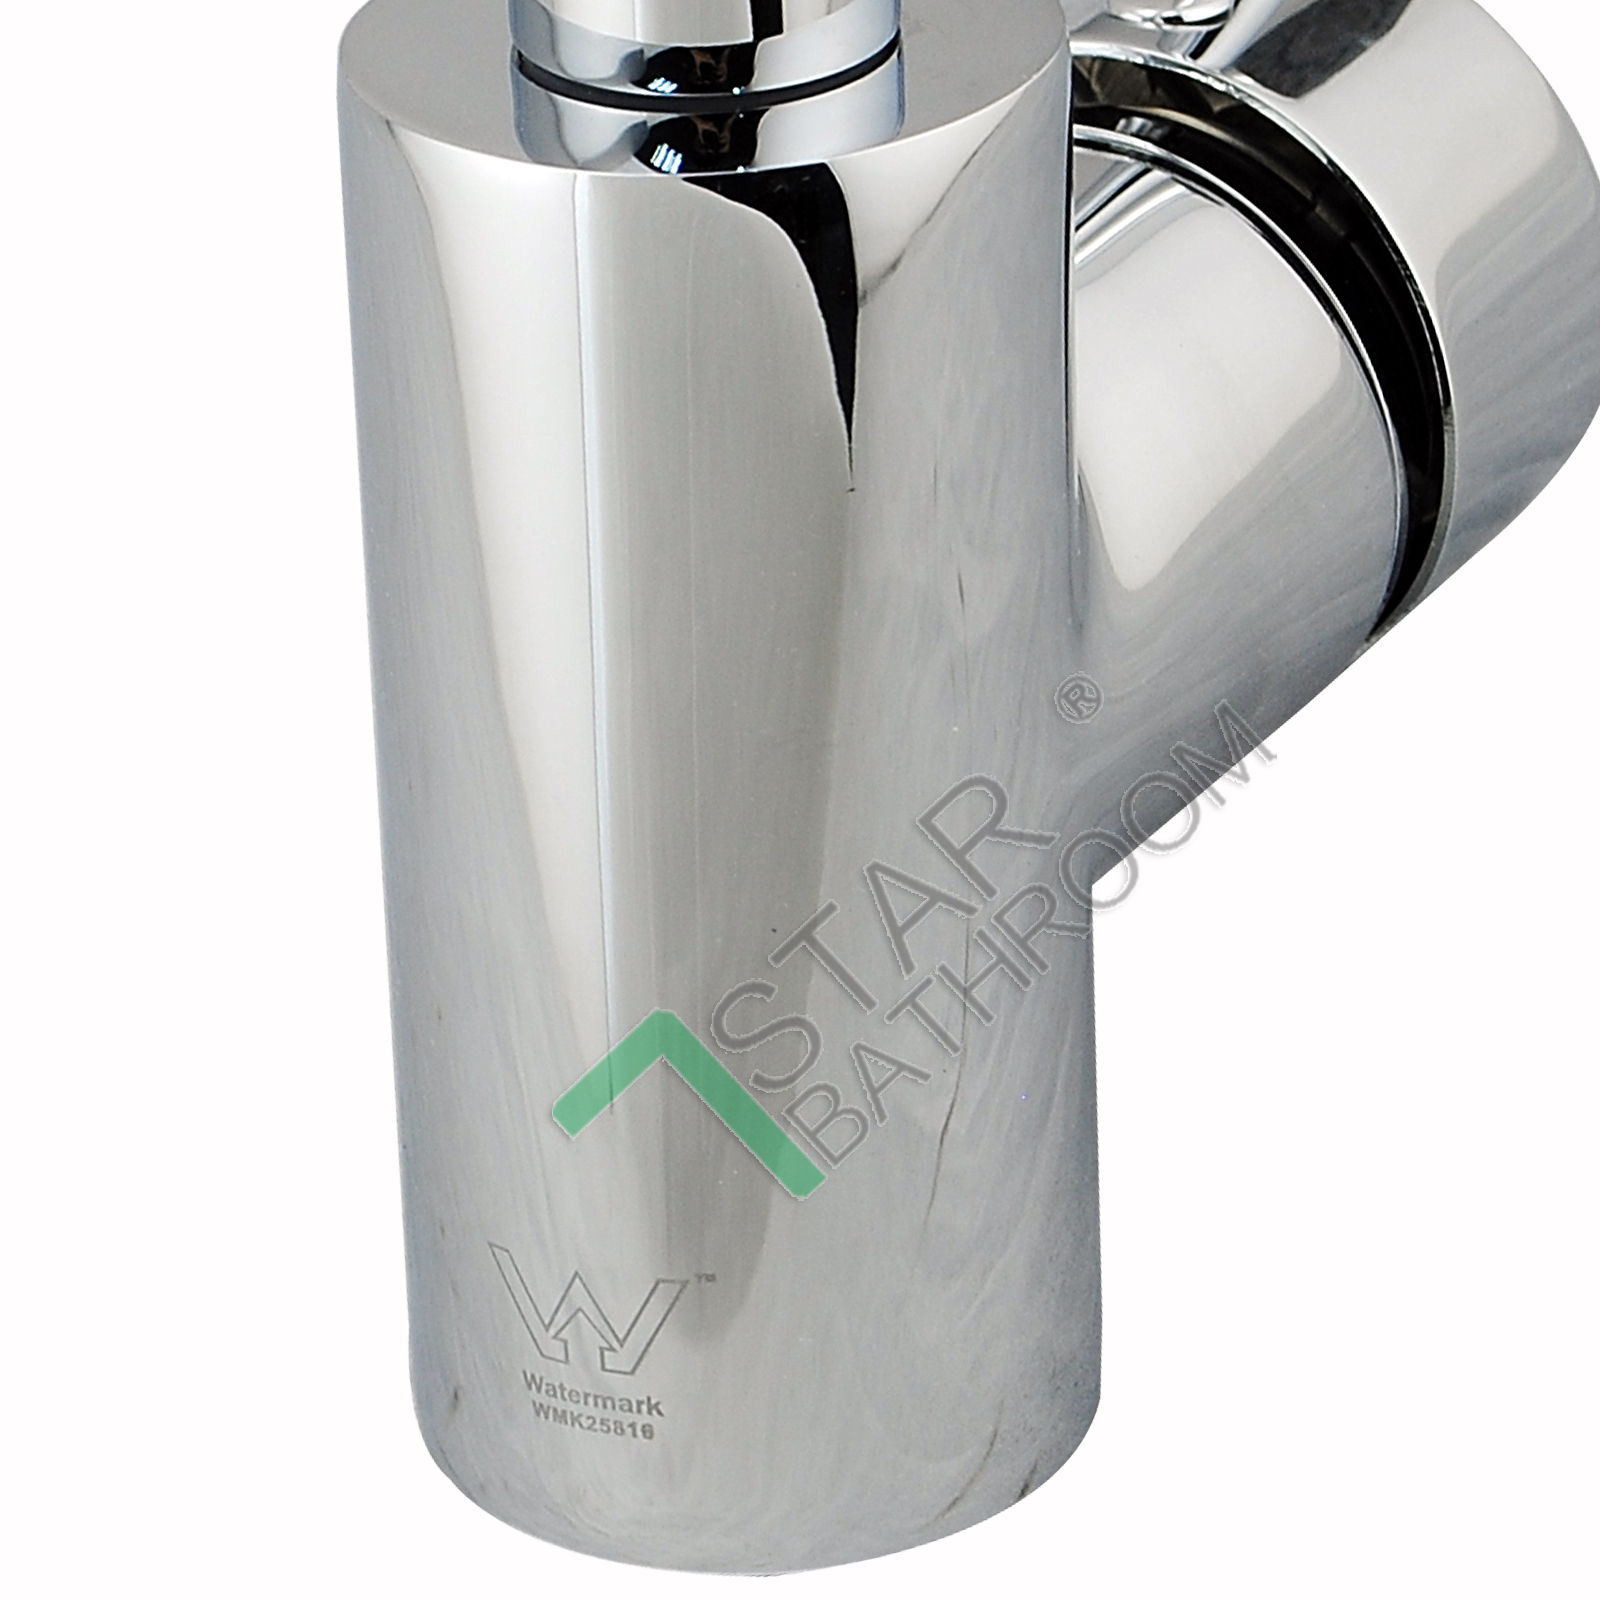 Au Watermark Kitchen Laundry Sink Mixer Tap Faucet Pull Out Spray Brass Polish Ebay